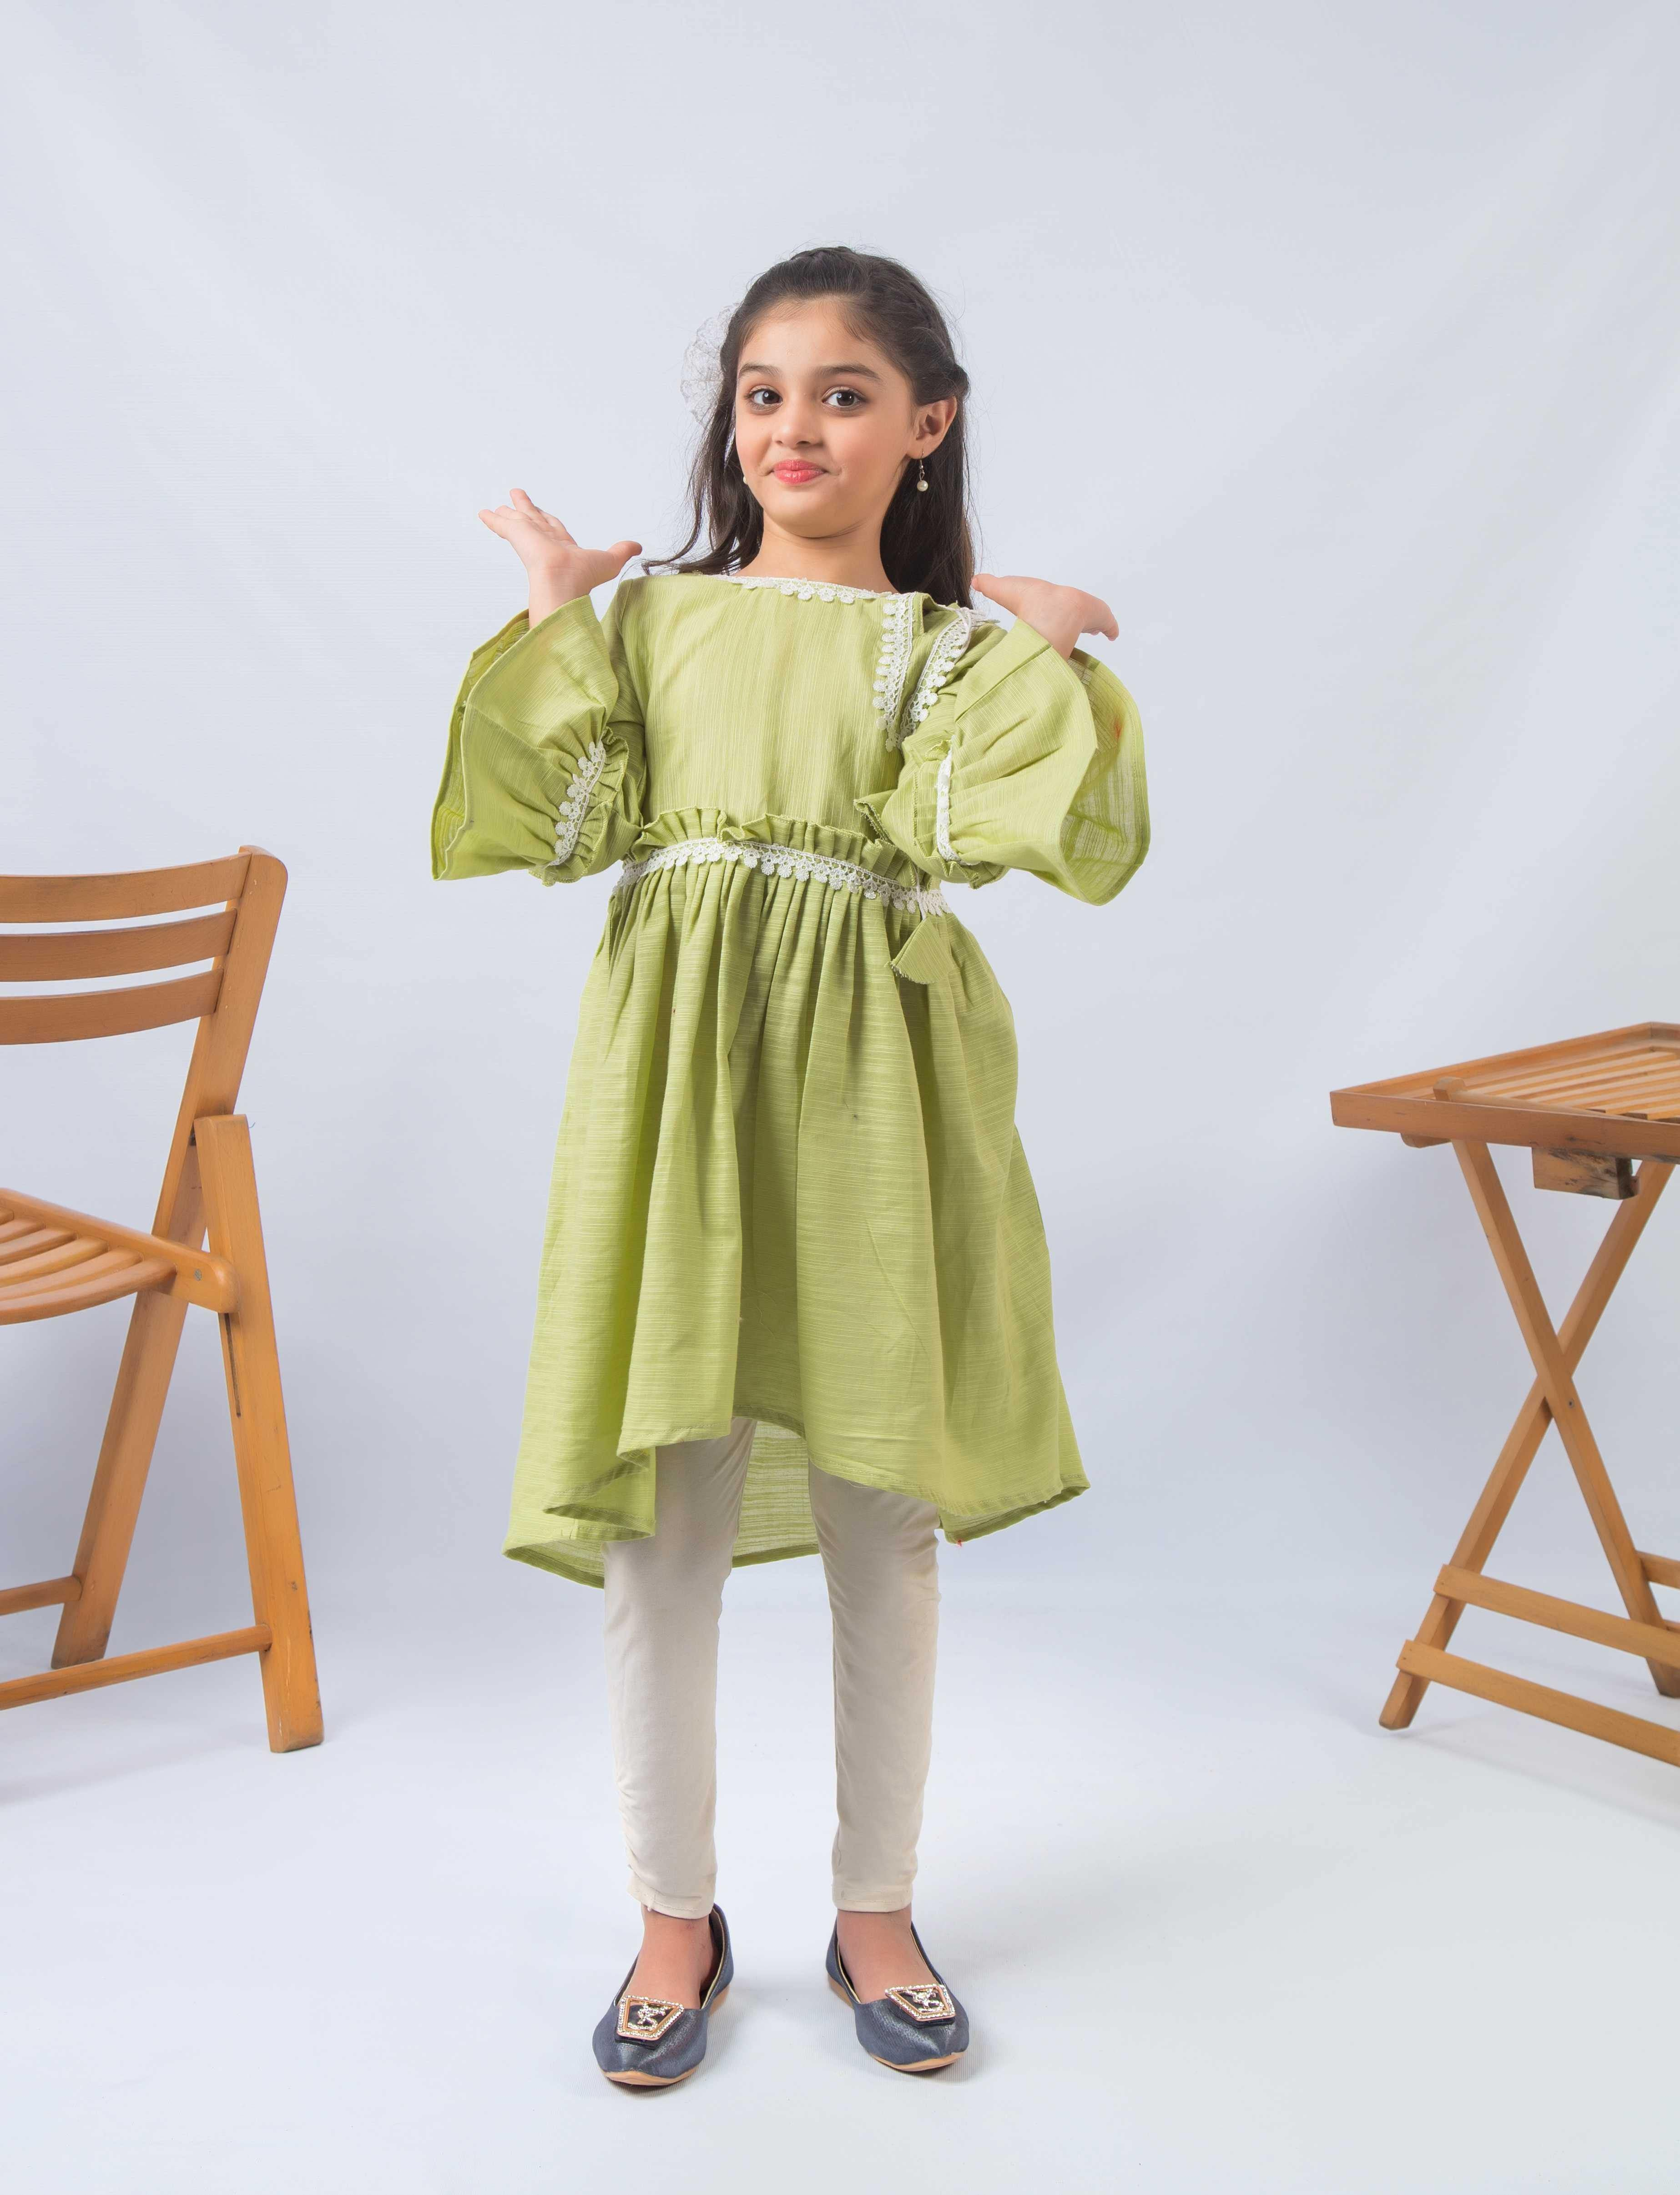 GREEN CARNATION - Modest Clothing